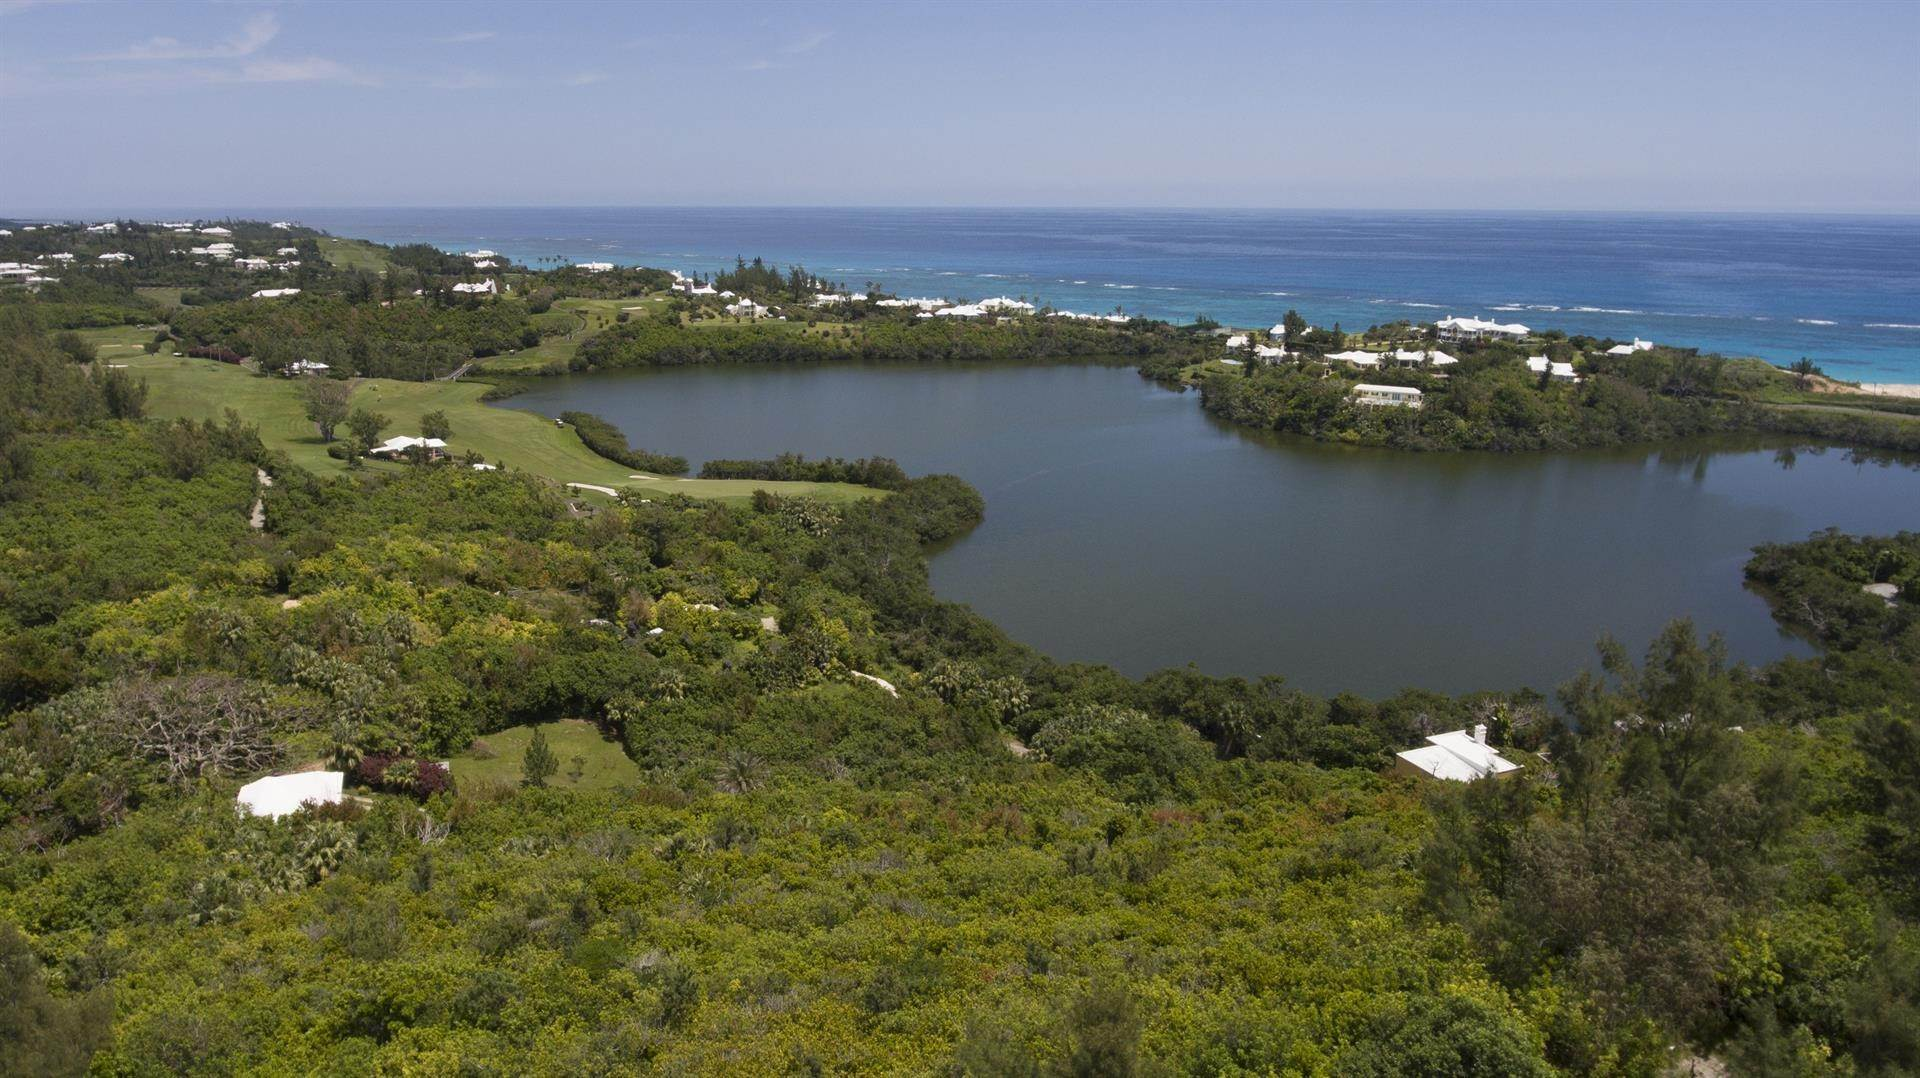 2. Gods för Försäljning vid North Estate: Old Quarry & North Farm North Estate: Old Quarry & North Farm, 126 Harrington Sound Road,Bermuda – Sinclair Realty